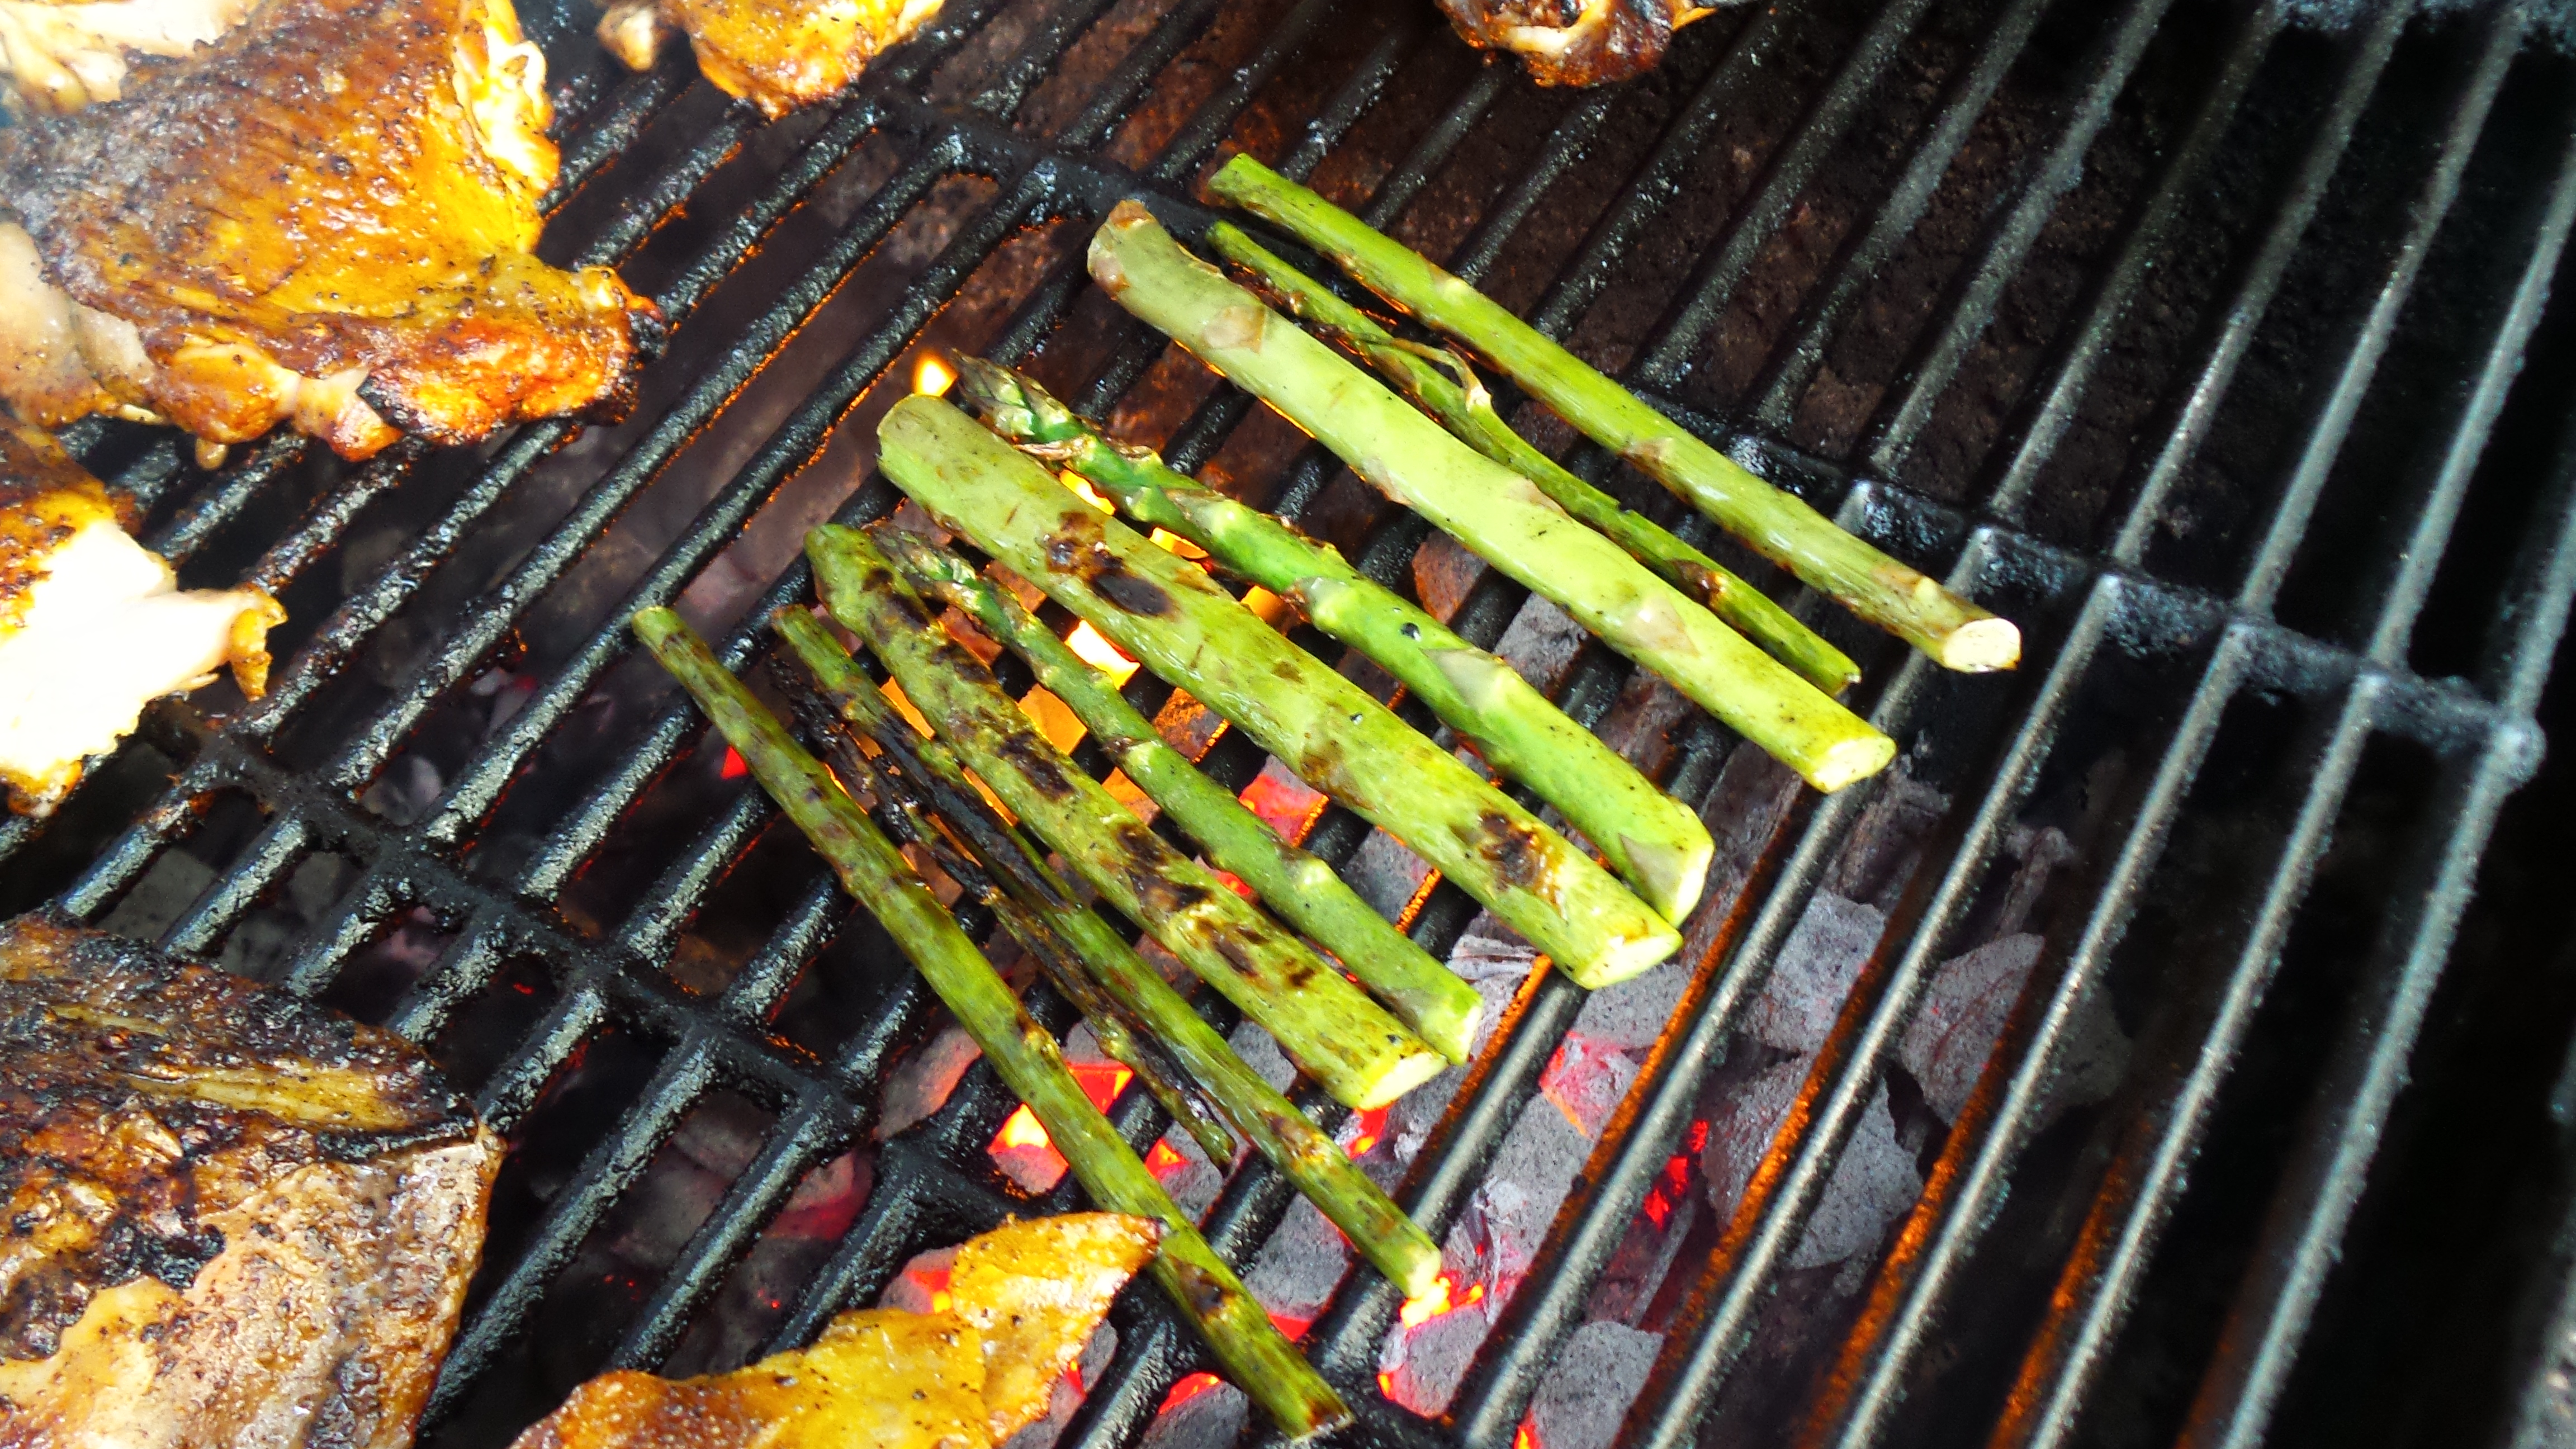 Grilled wild asparagus realtree for Fish table sweepstakes near me